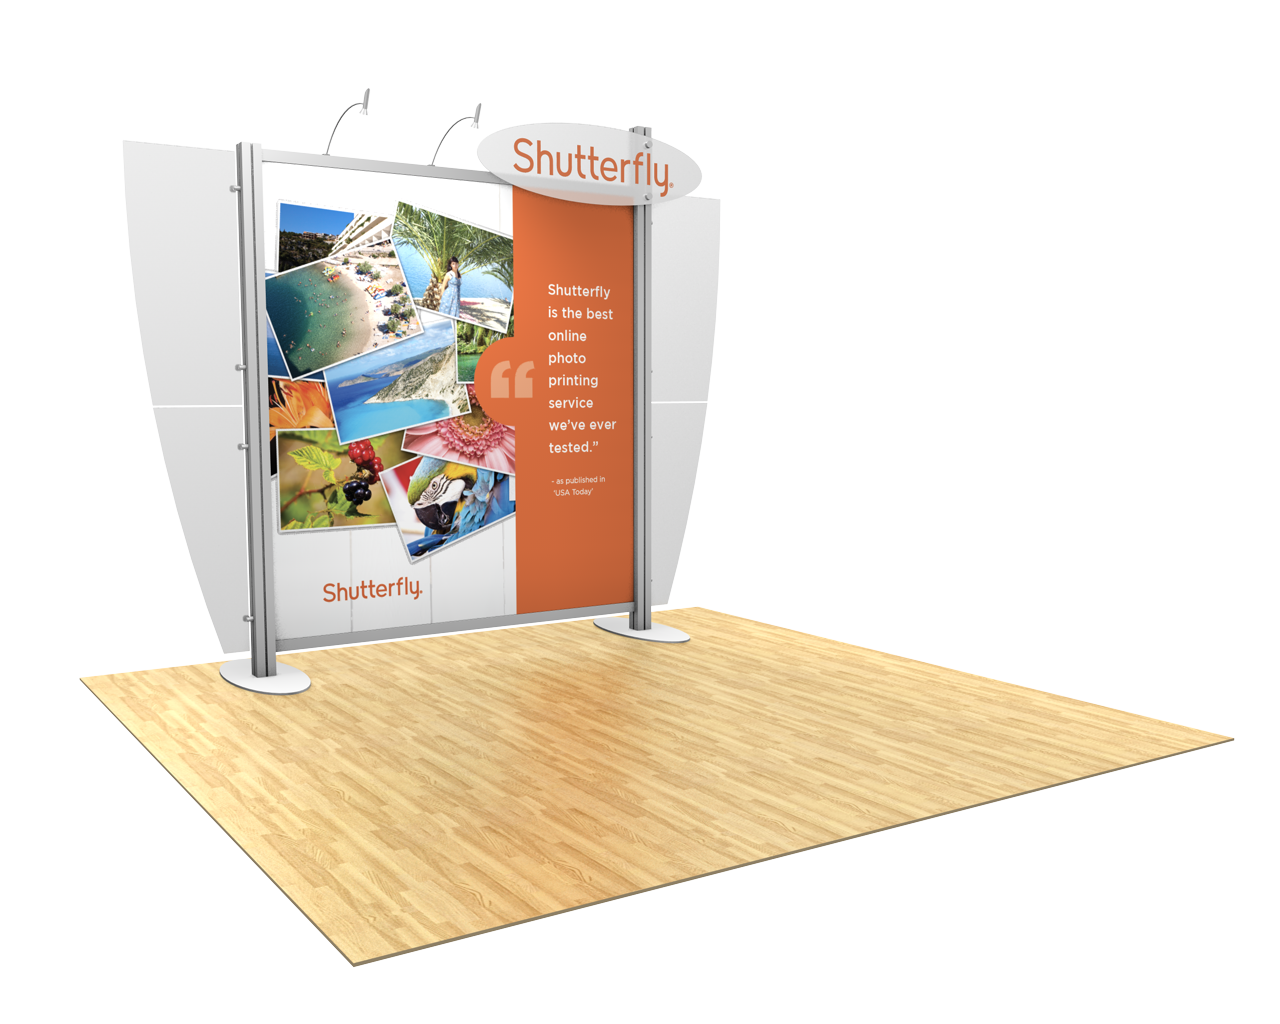 XVline XV1 10x10 Trade Show Display Model